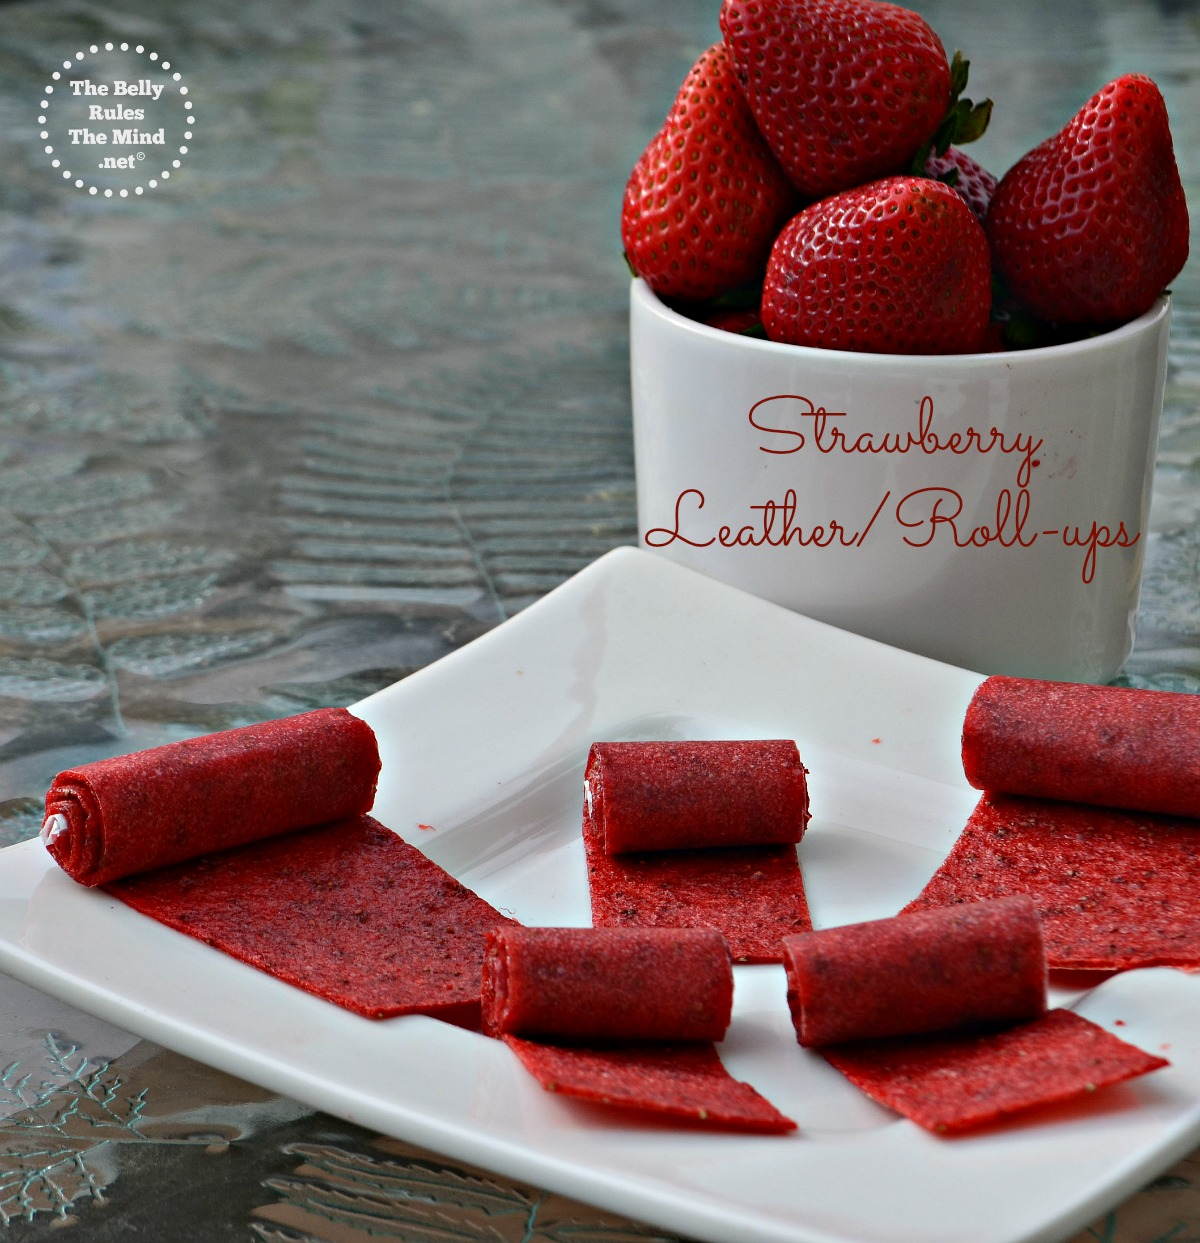 Strawberry leather/roll-ups